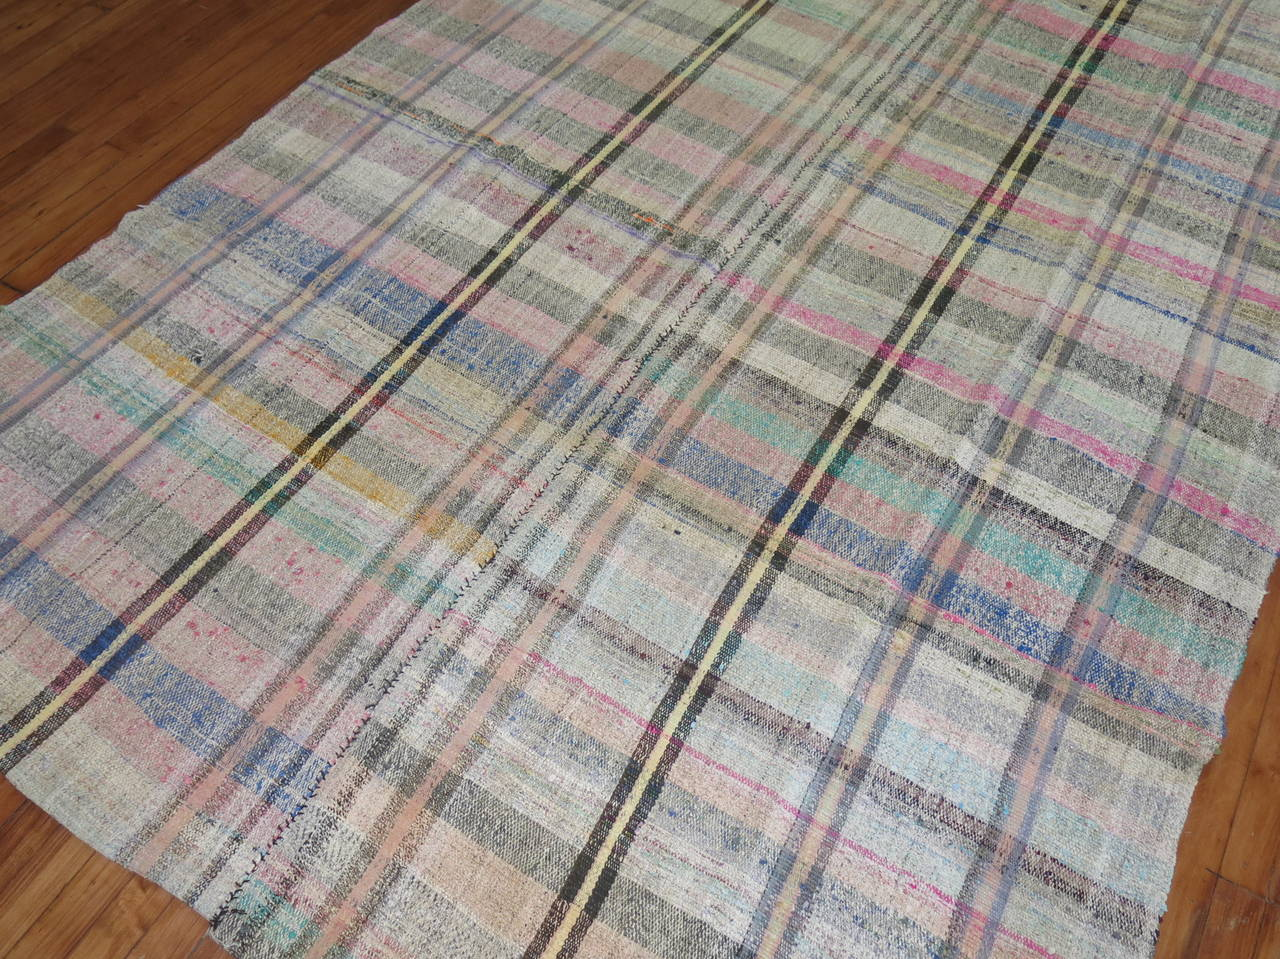 Vintage Turkish Plaid Style Kilim 7